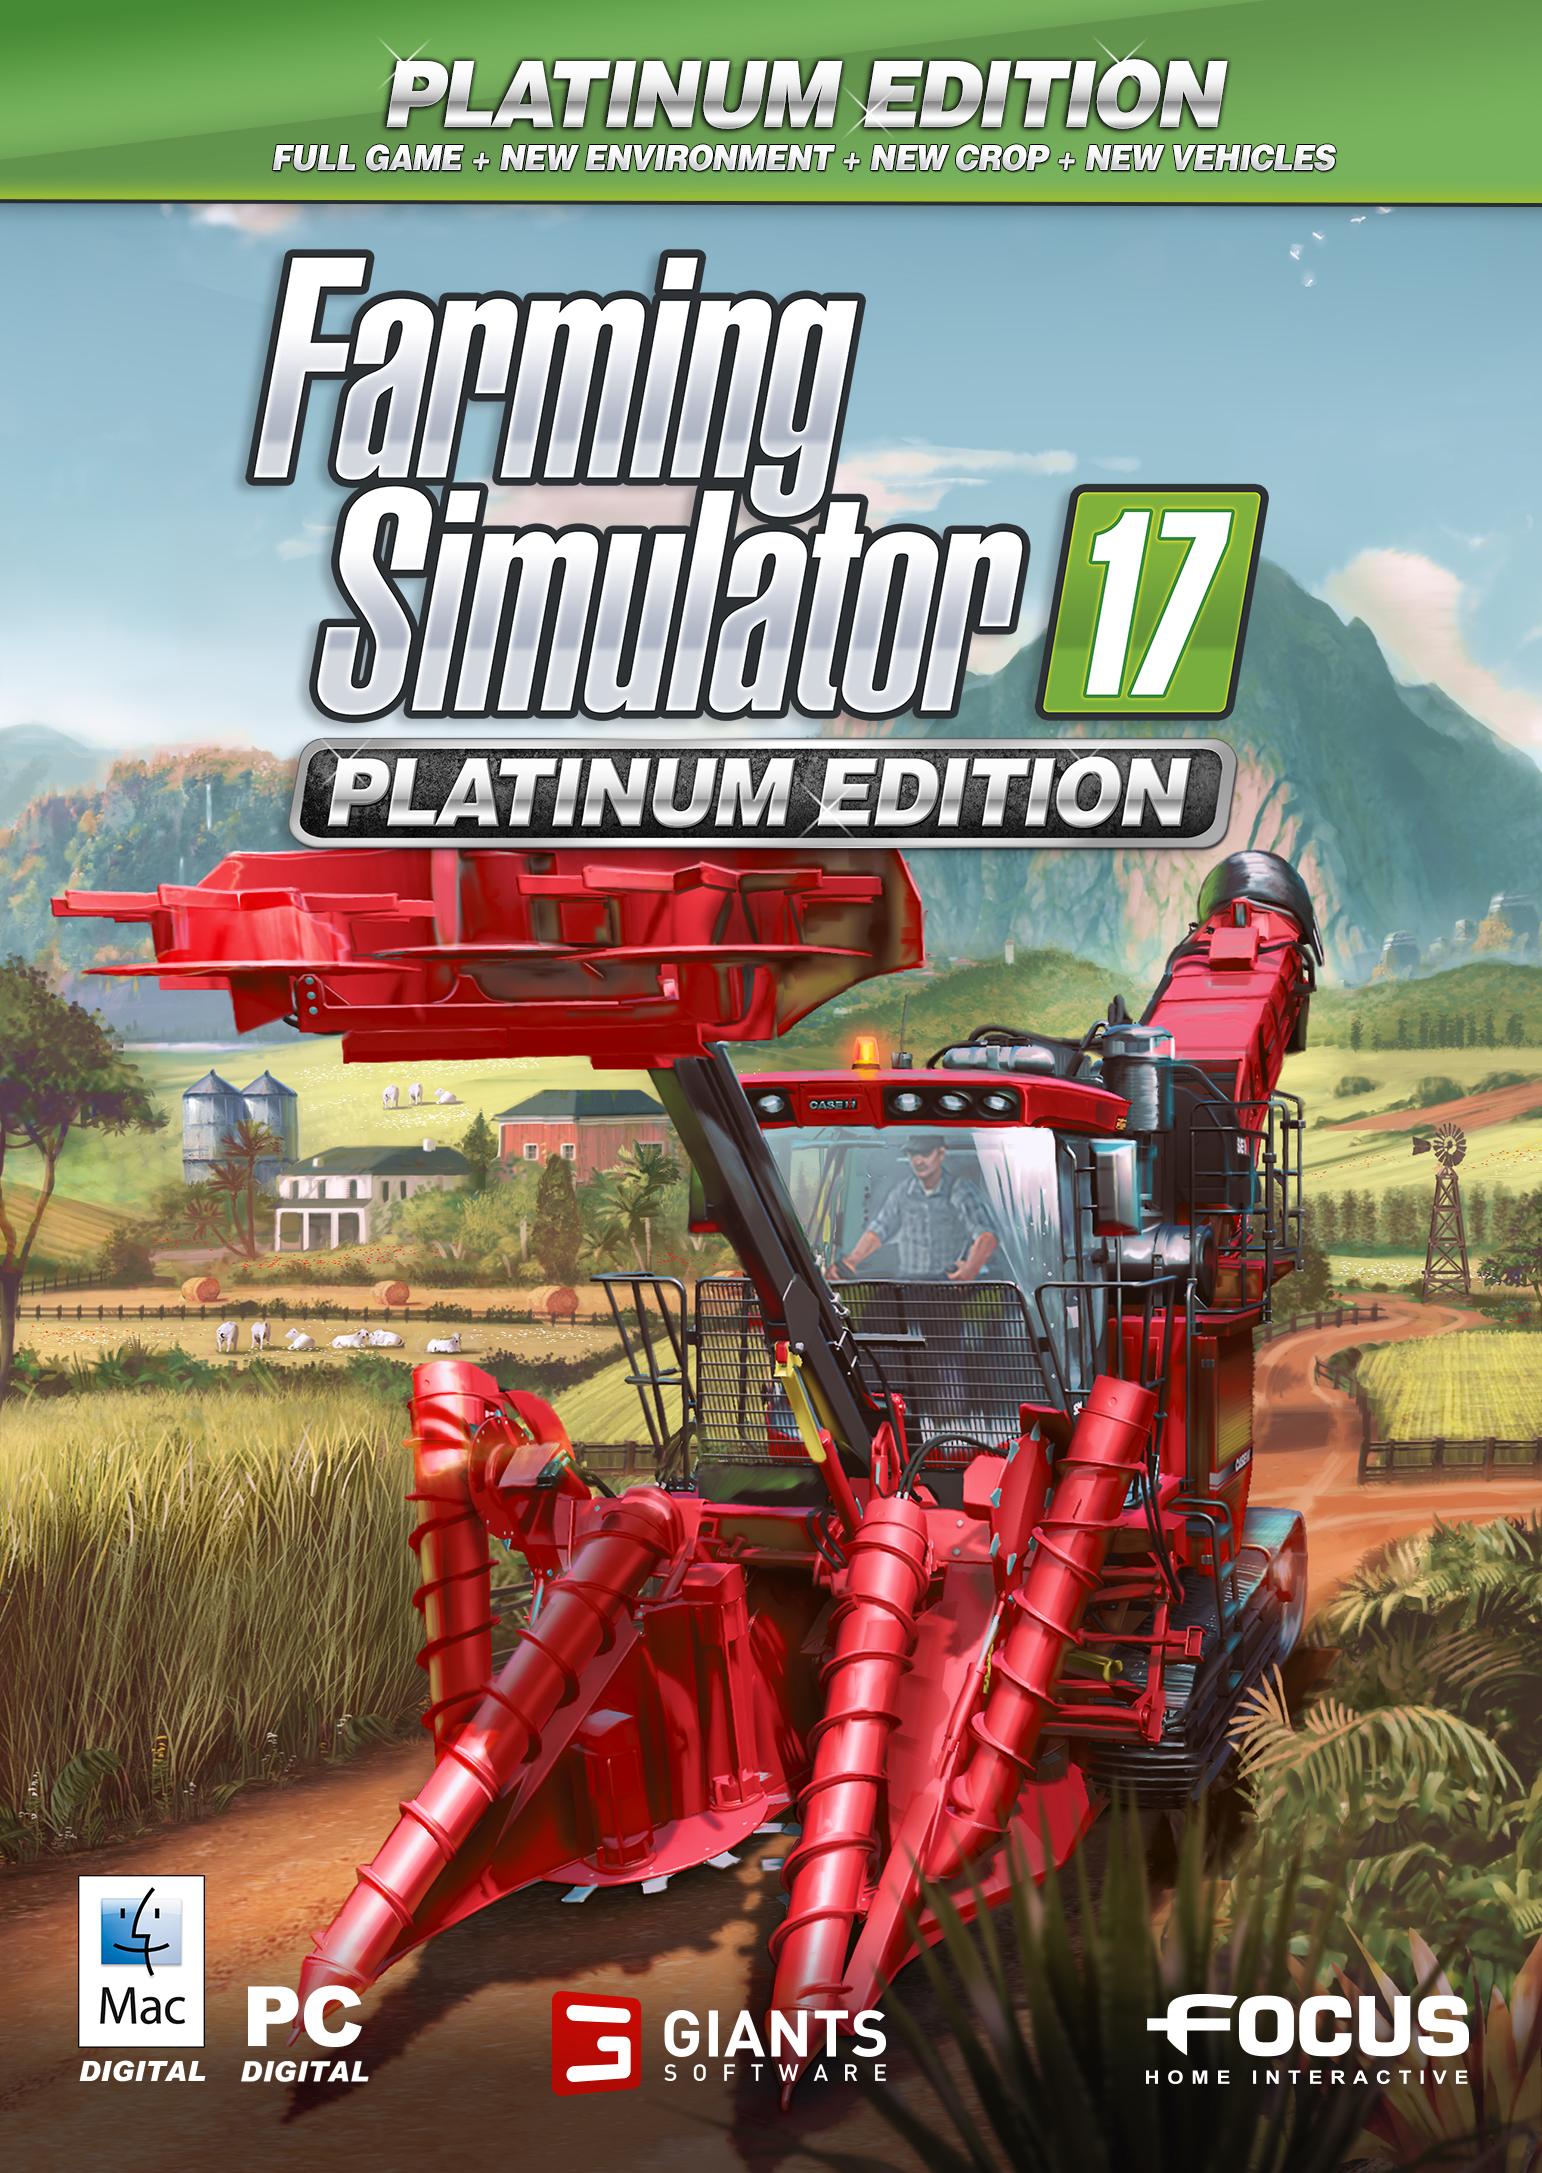 Farming Simulator 17 - Platinum Edition PC/MAC [Online Game Code]